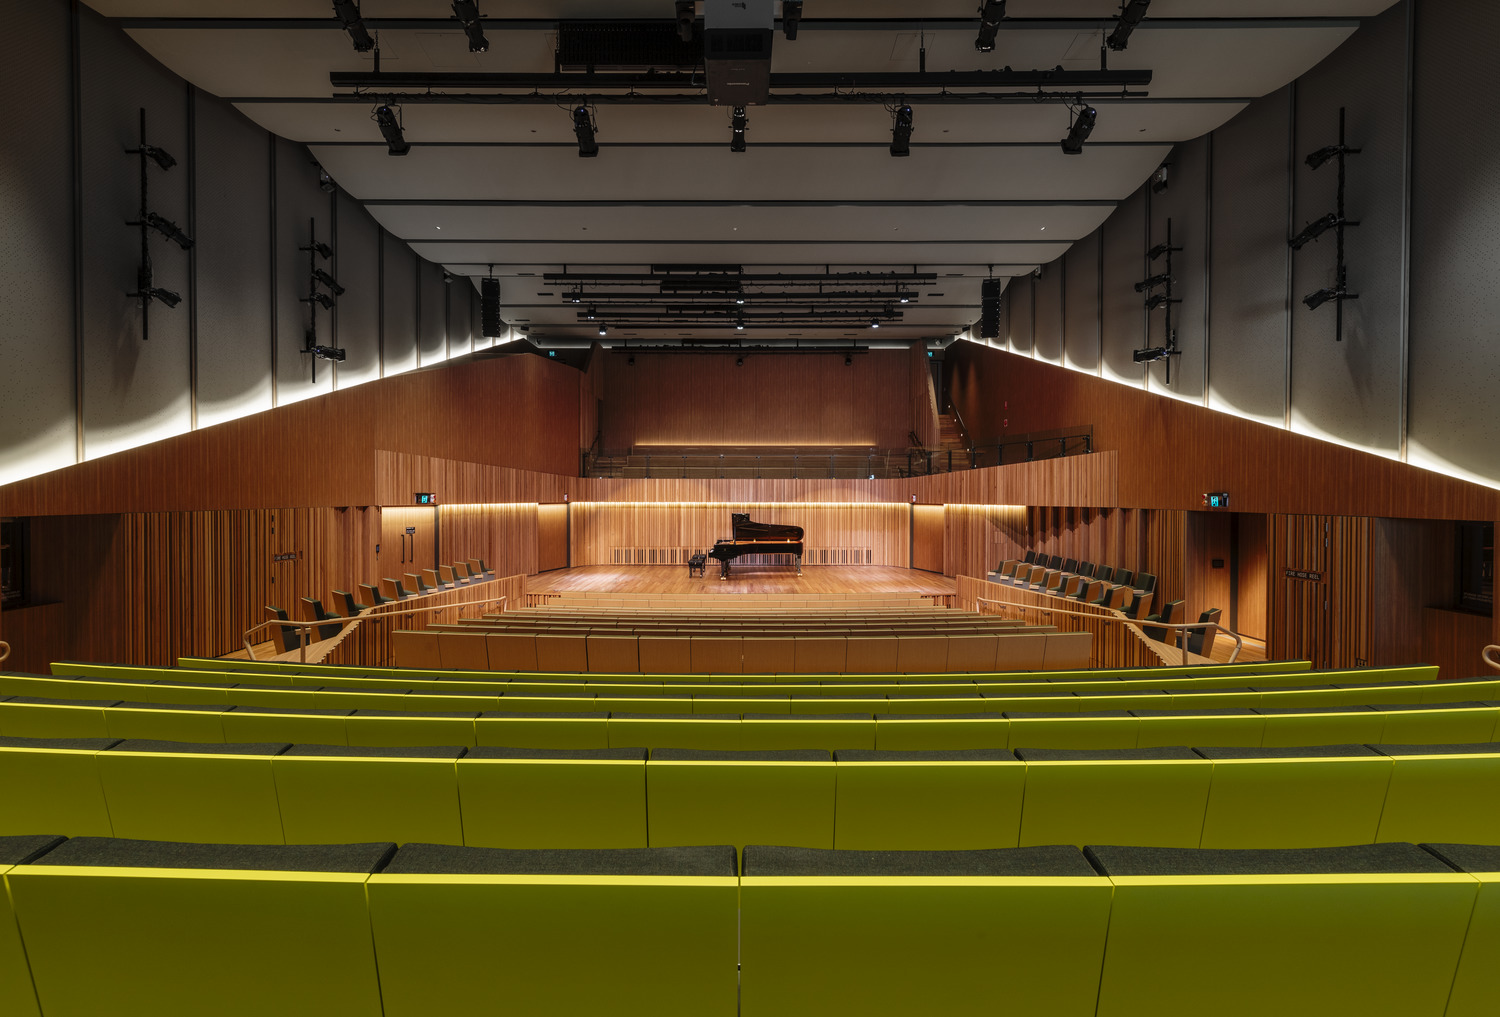 This space accomodates 40 musicians, a choral balcony for 60 and seating for 400 people Trevor Mein